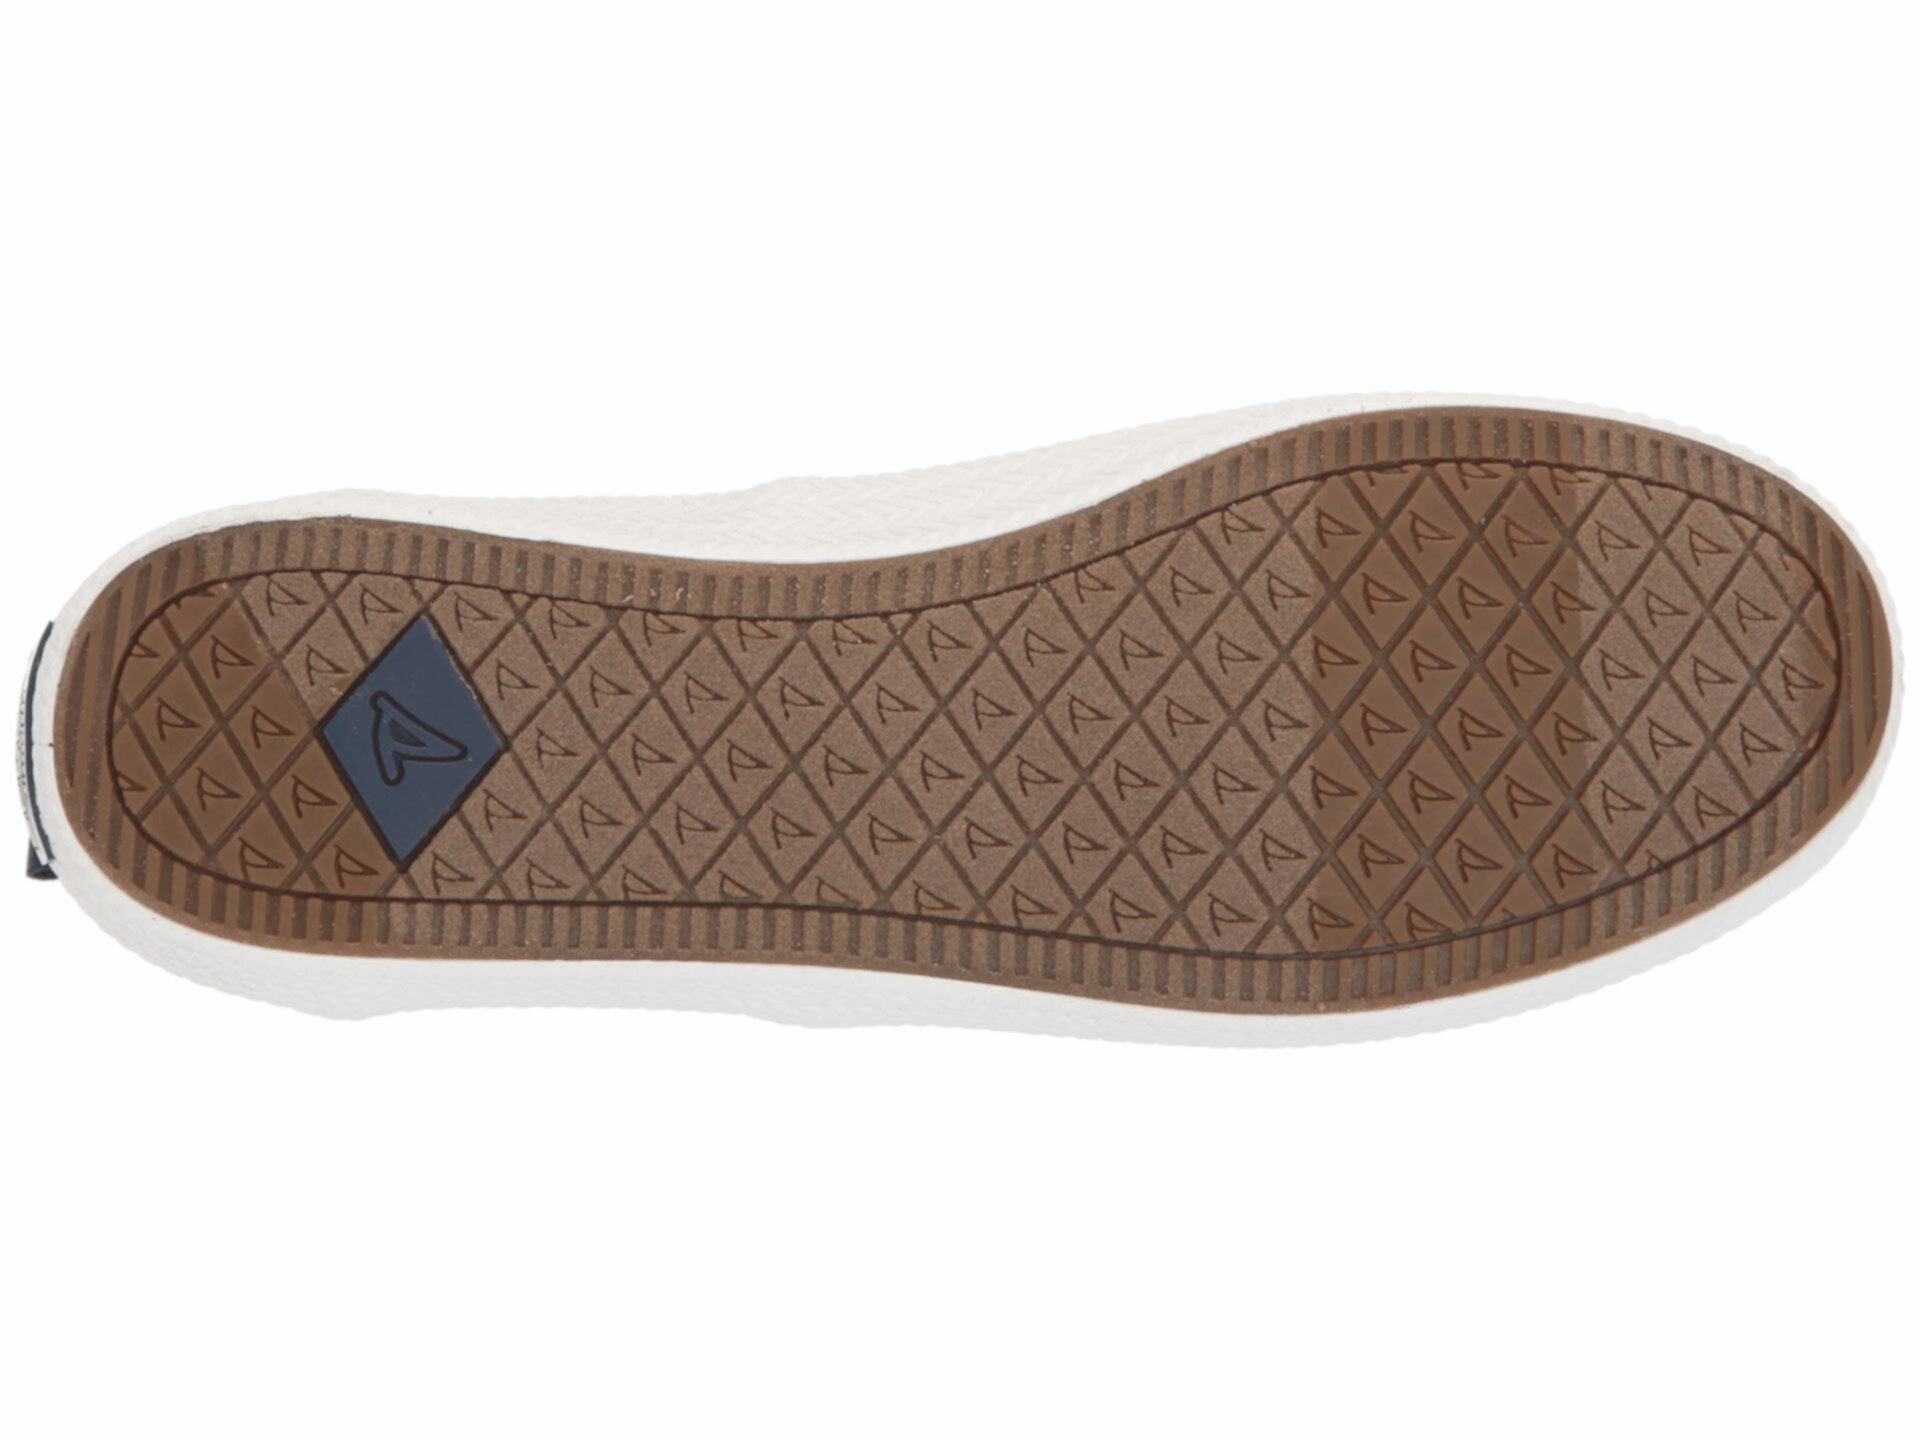 Crest Rope Fray Sperry